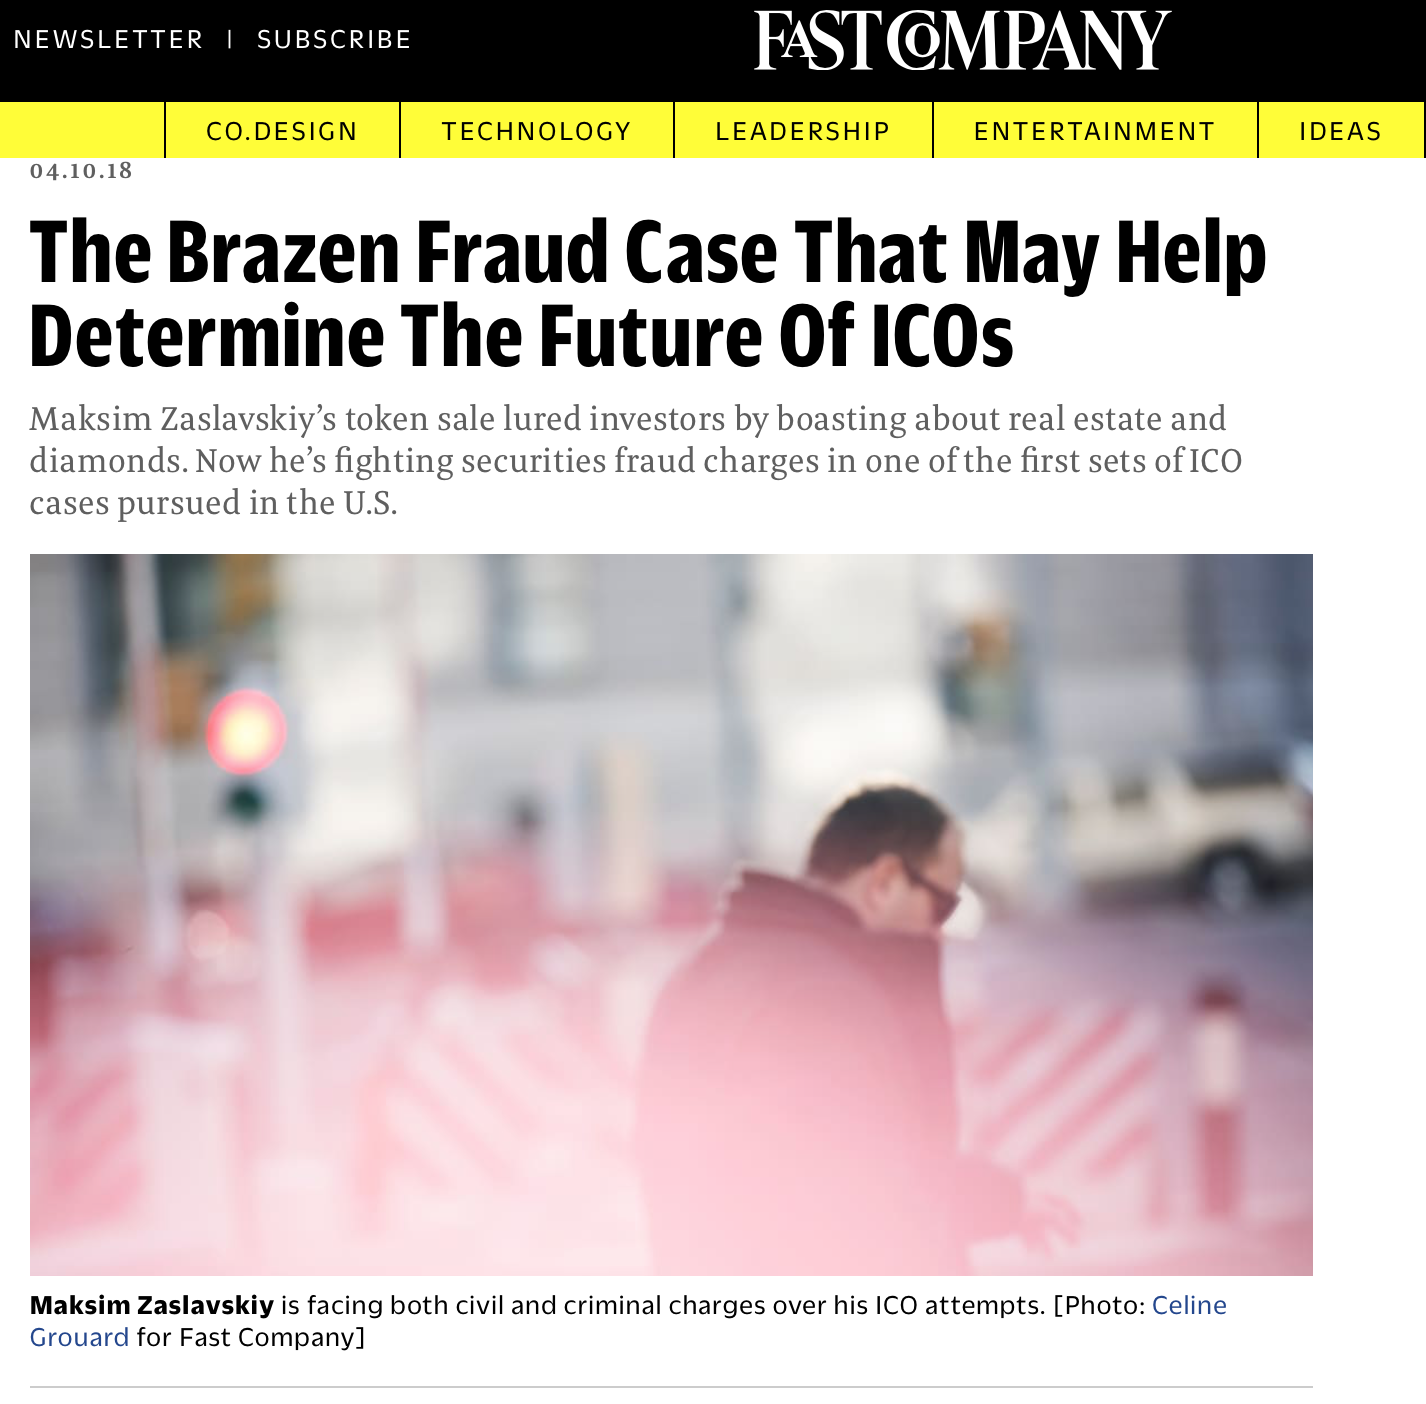 Maksim Zaslavskiy's ICO fraud case (Fast Company) - As part of the team that reported for Fast Company on one of the first ICOs to be prosecuted by federal authorities, I led audience engagement and contributed reporting and visuals for this six-month investigation.